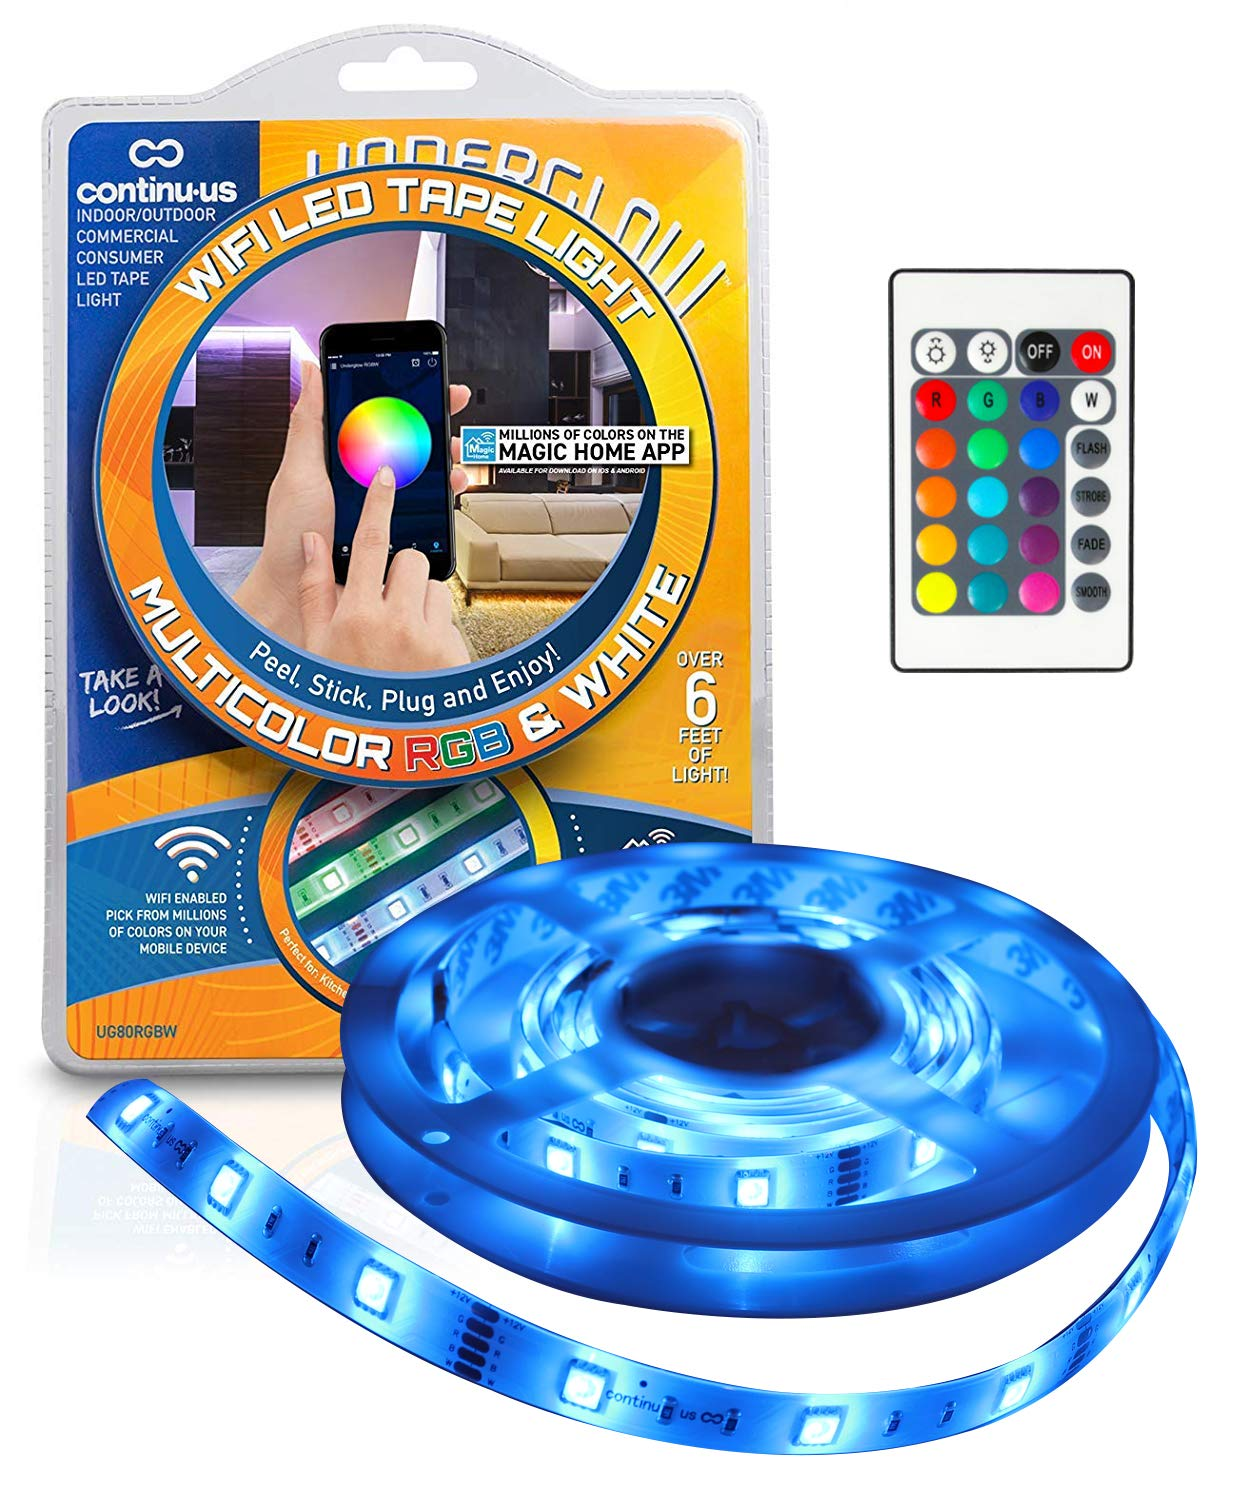 LED Strip Lights WiFi Enabled - Underglow Smart Ribbon Light Kit by Continu.us | Waterproof, Lightweight Tape Light. Millions of Colors Controlled by Smartphone or Remote.